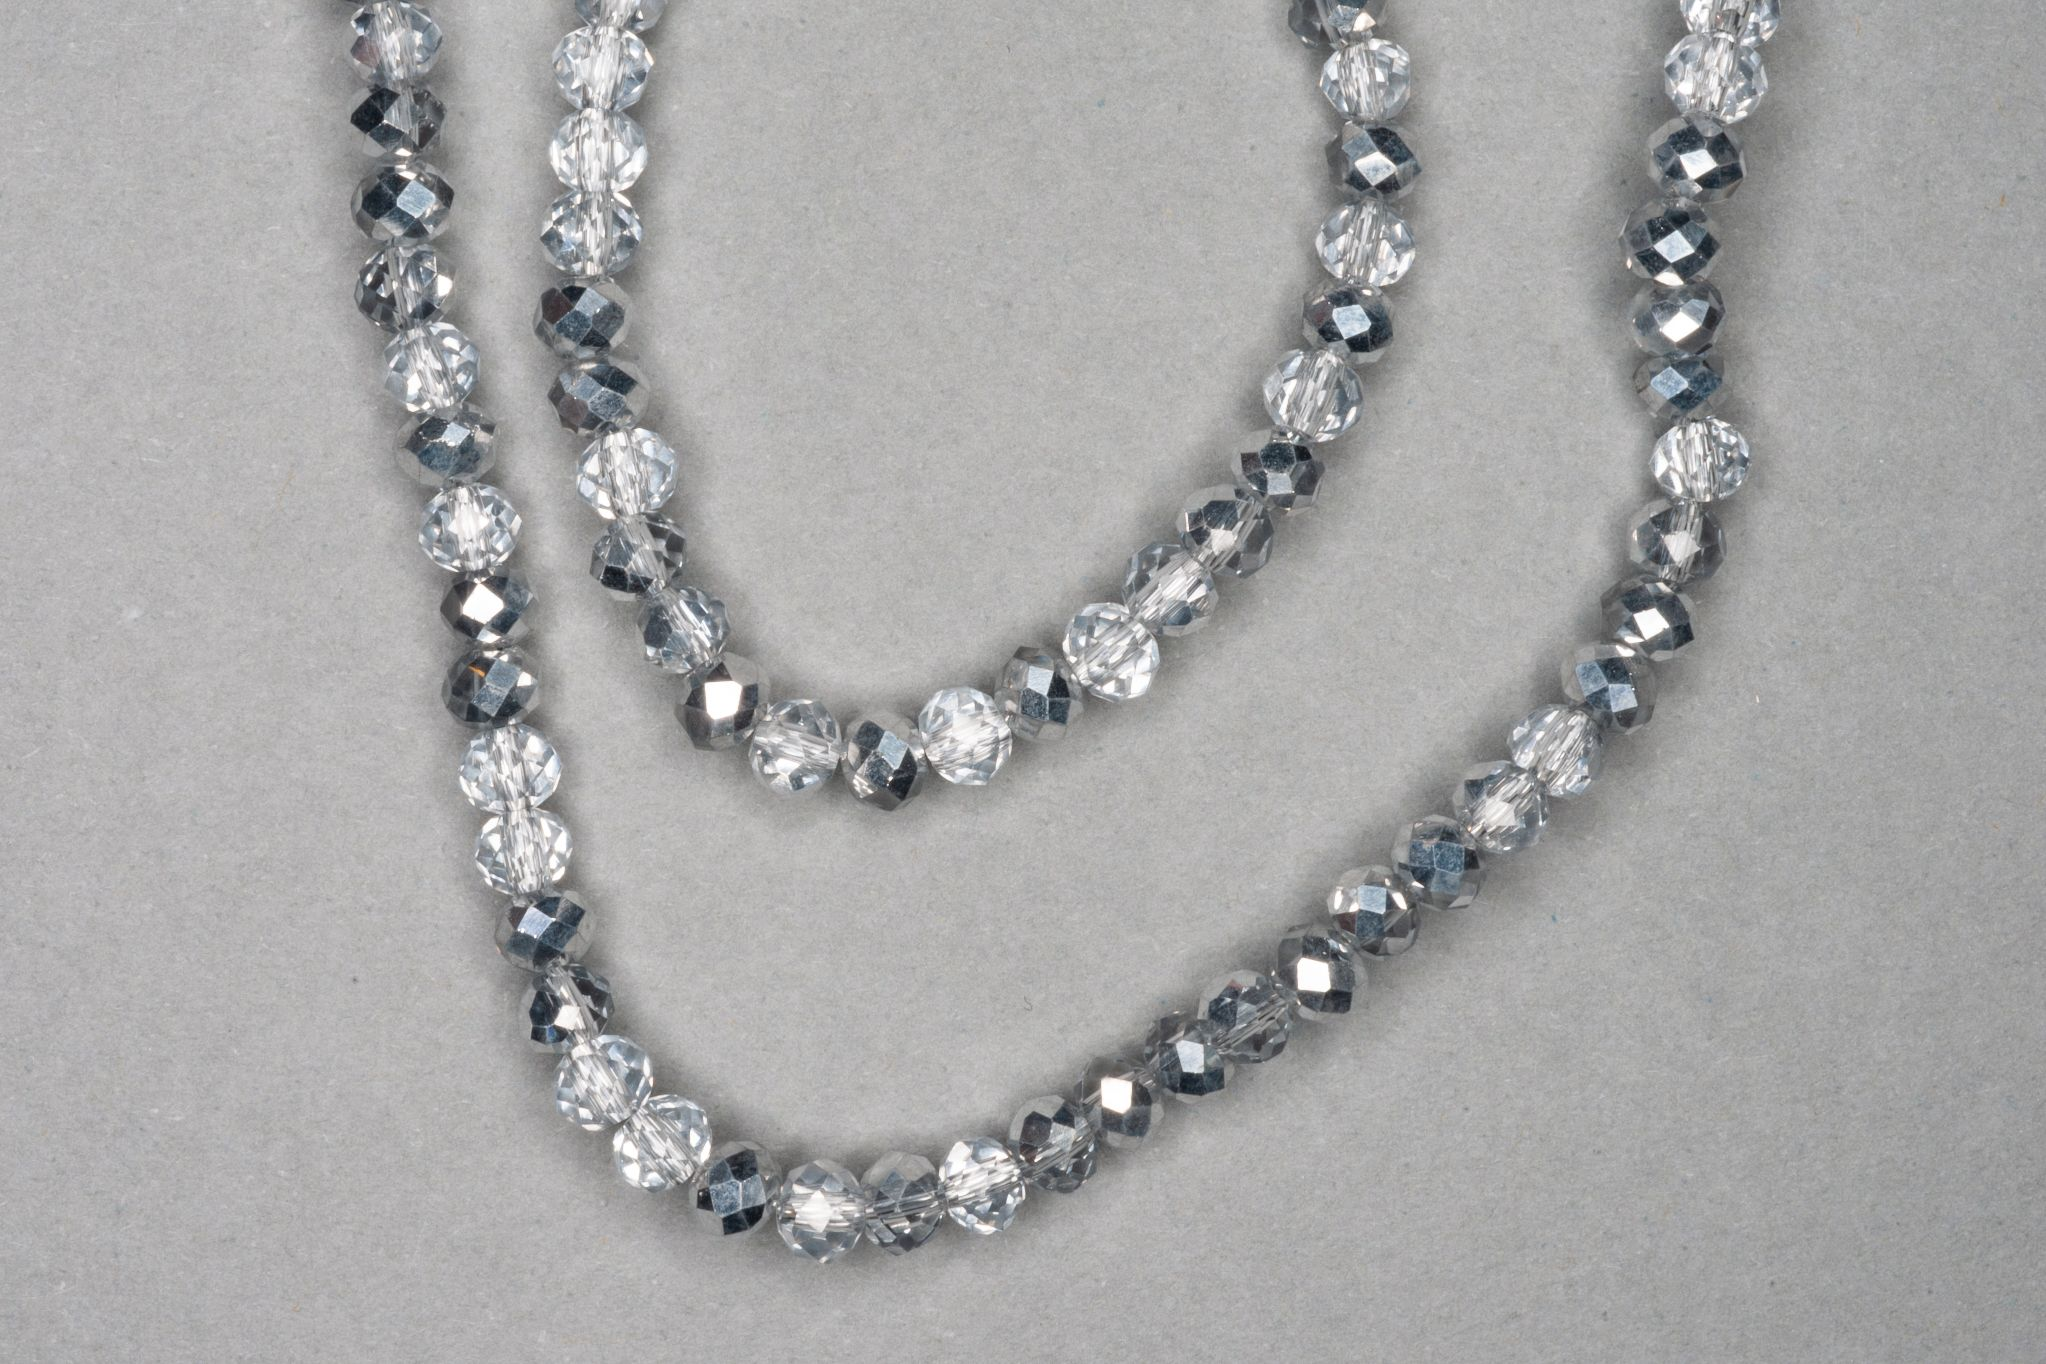 Silver/Clear Faceted Glass Beads